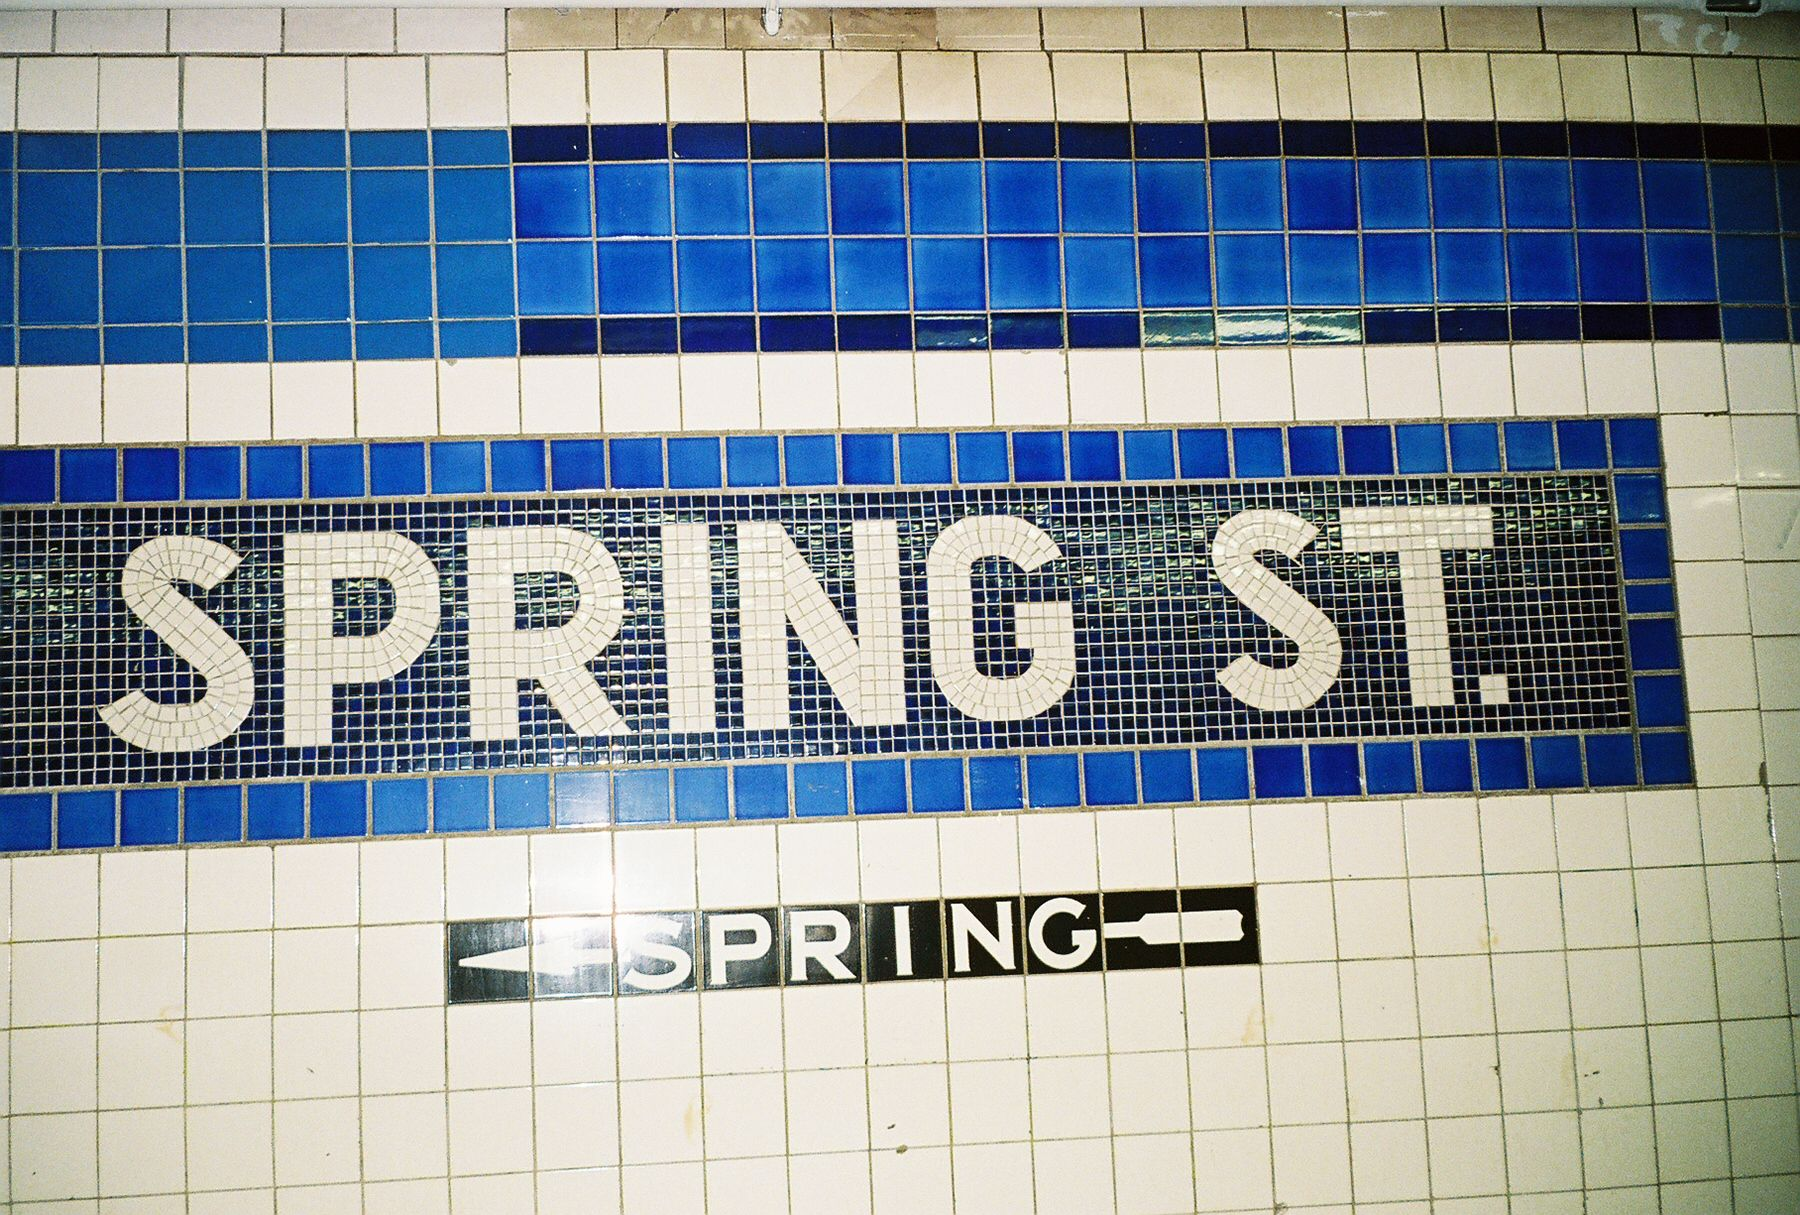 Head to the Spring Street station, via the C or E train, to